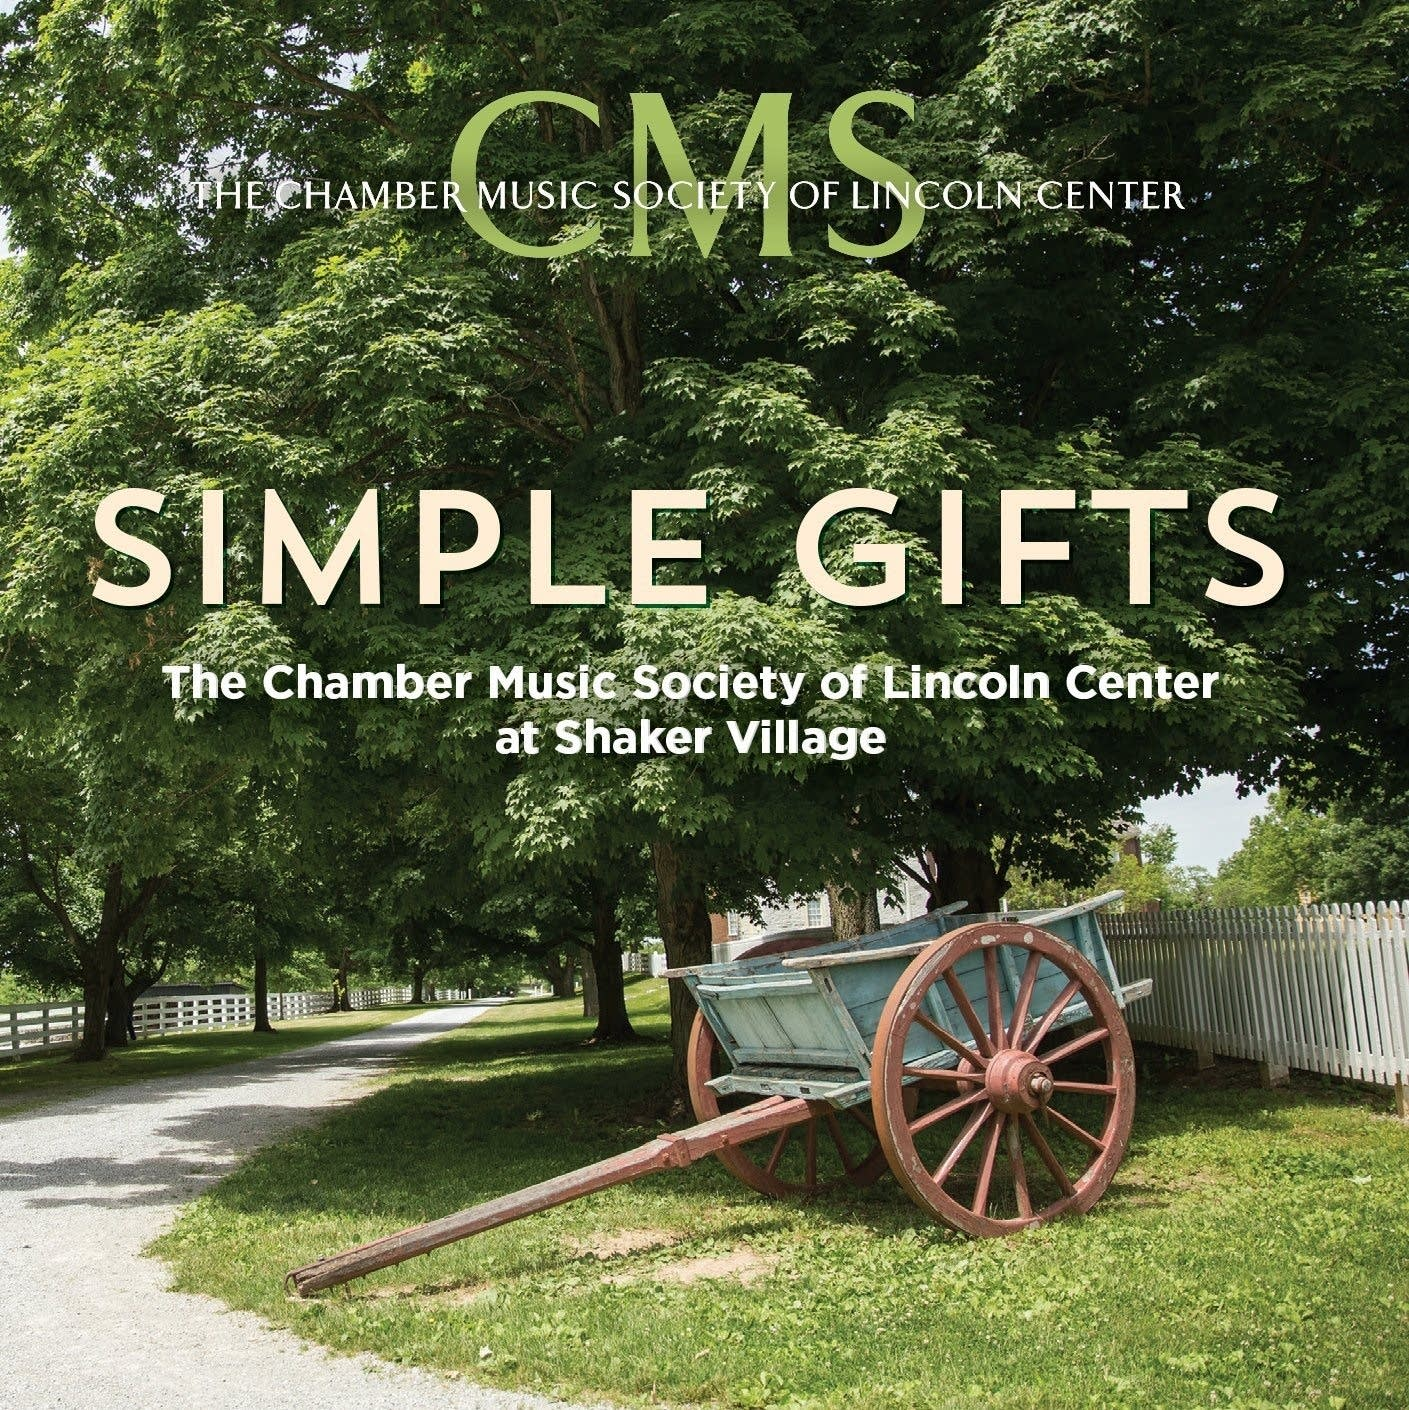 Simple Gifts at Shaker Village